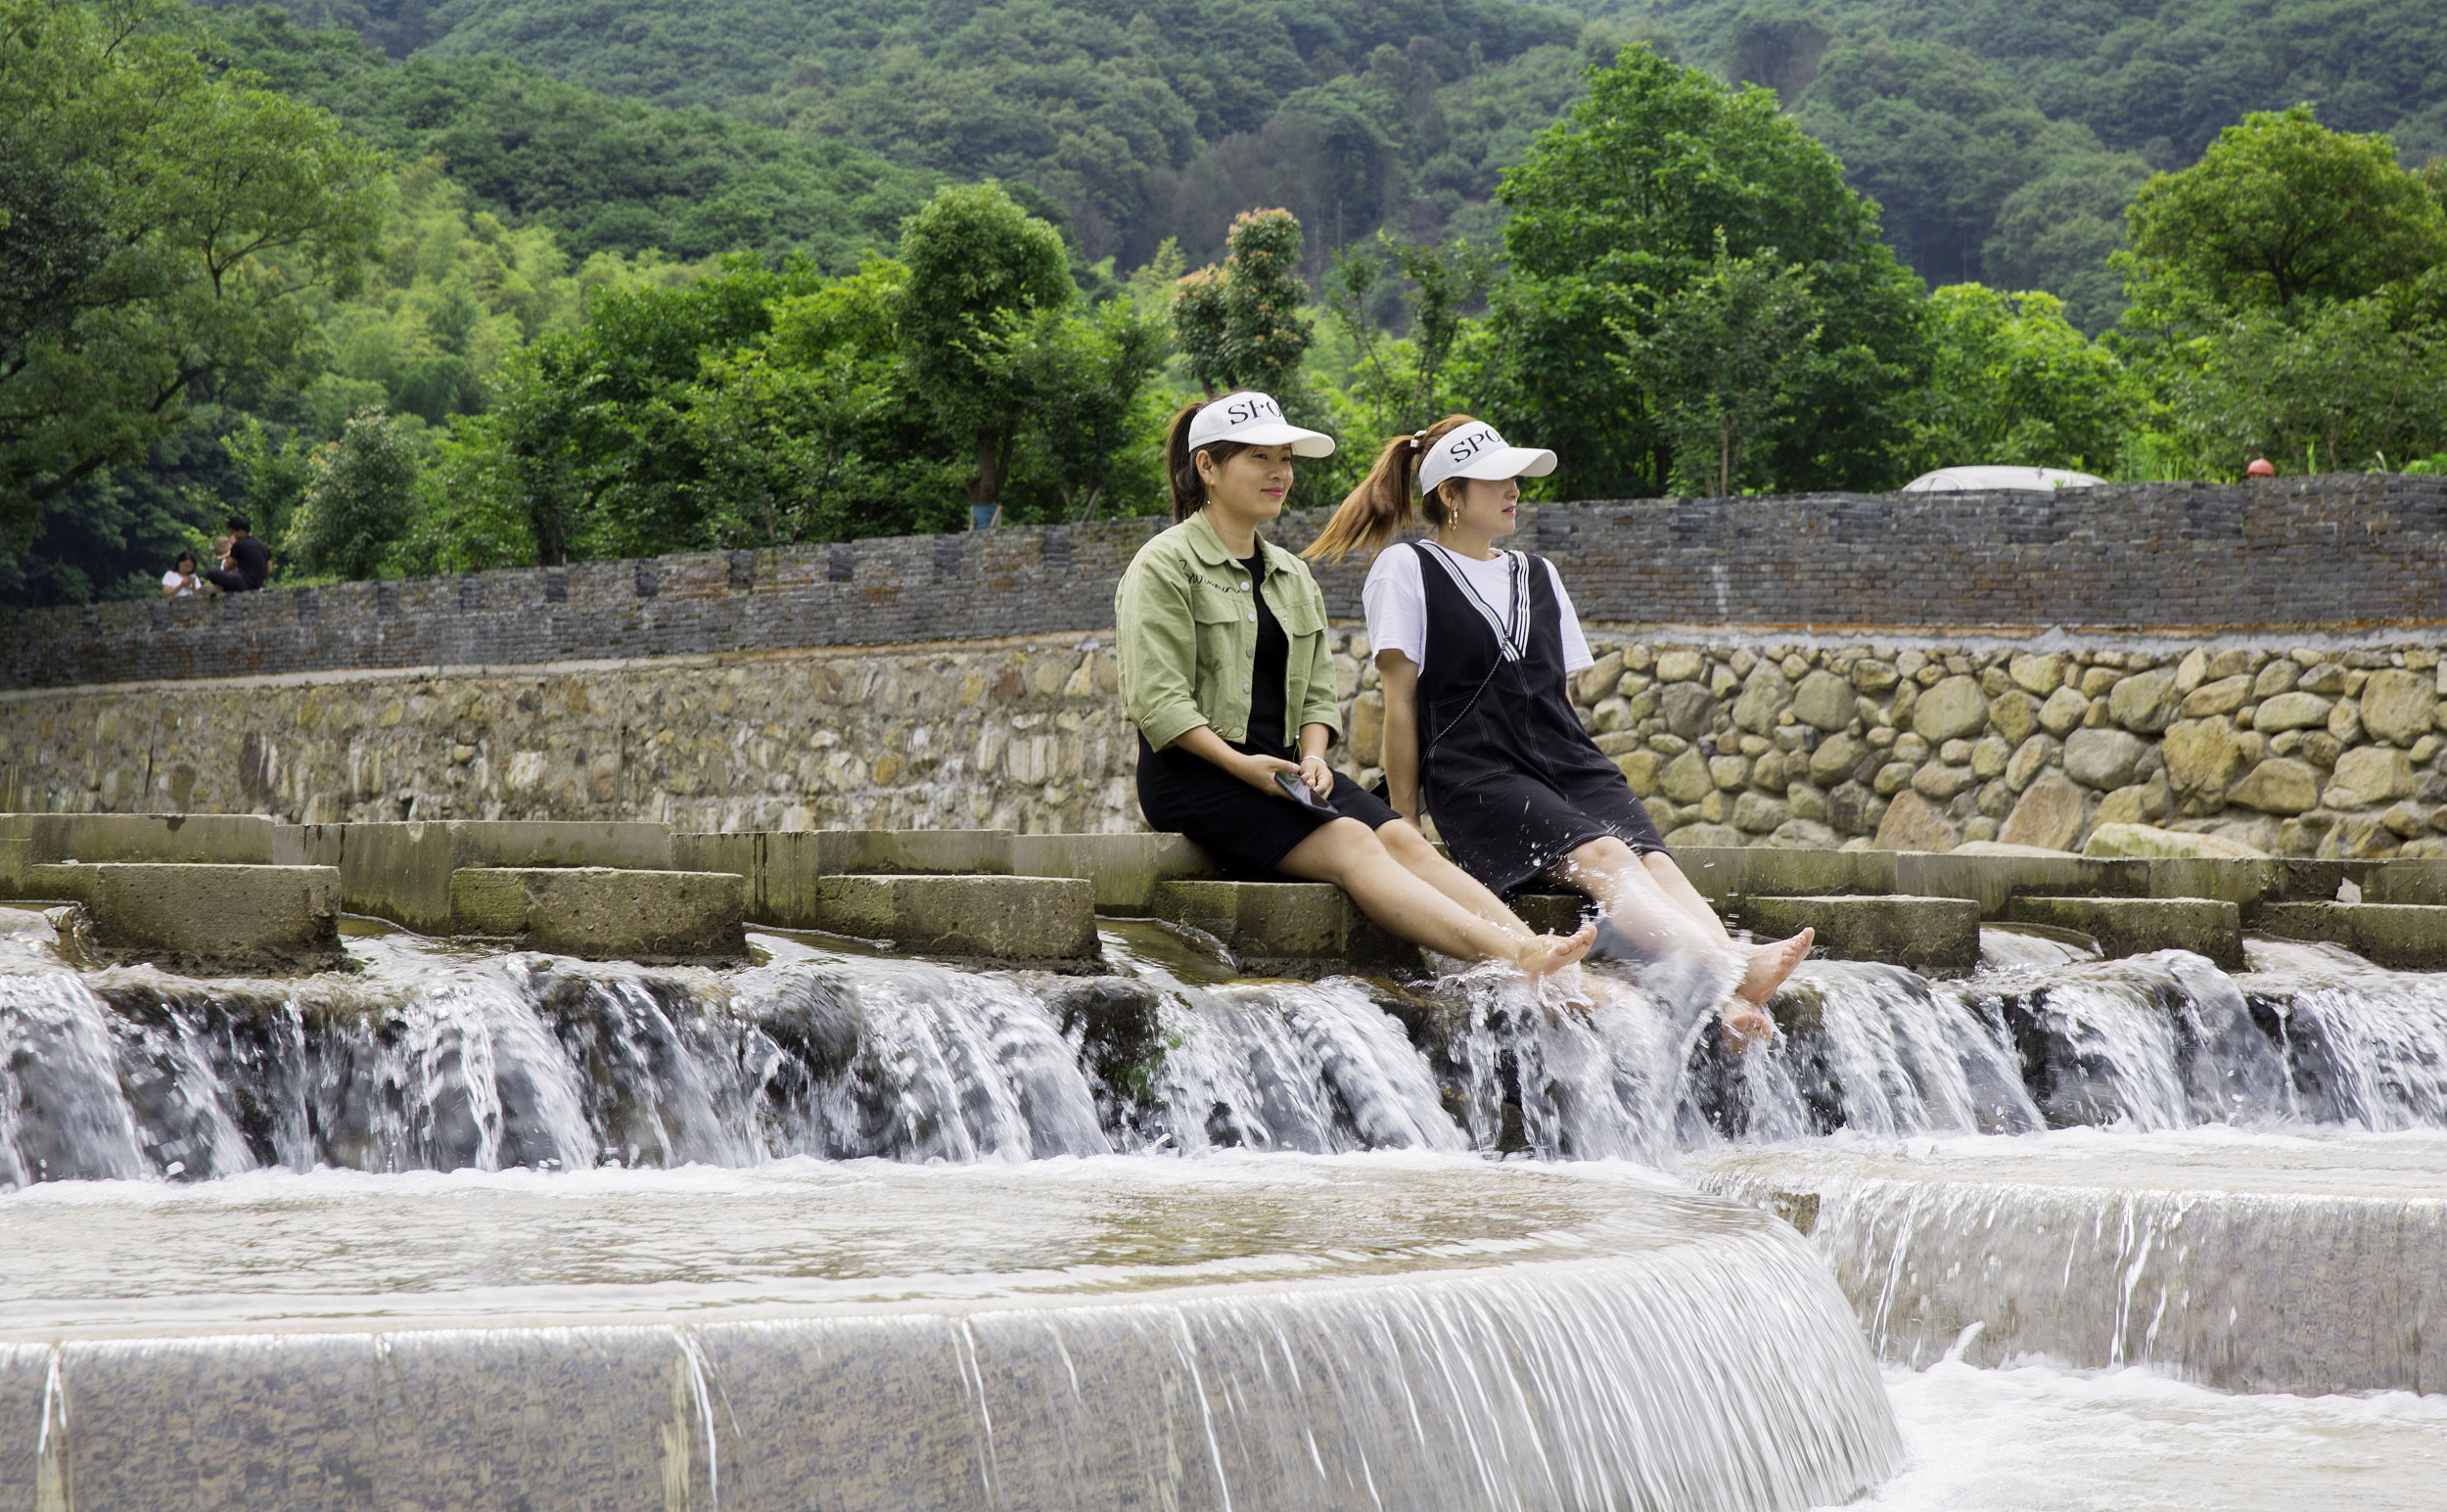 Environmental protection boosts rural tourism in Ningbo